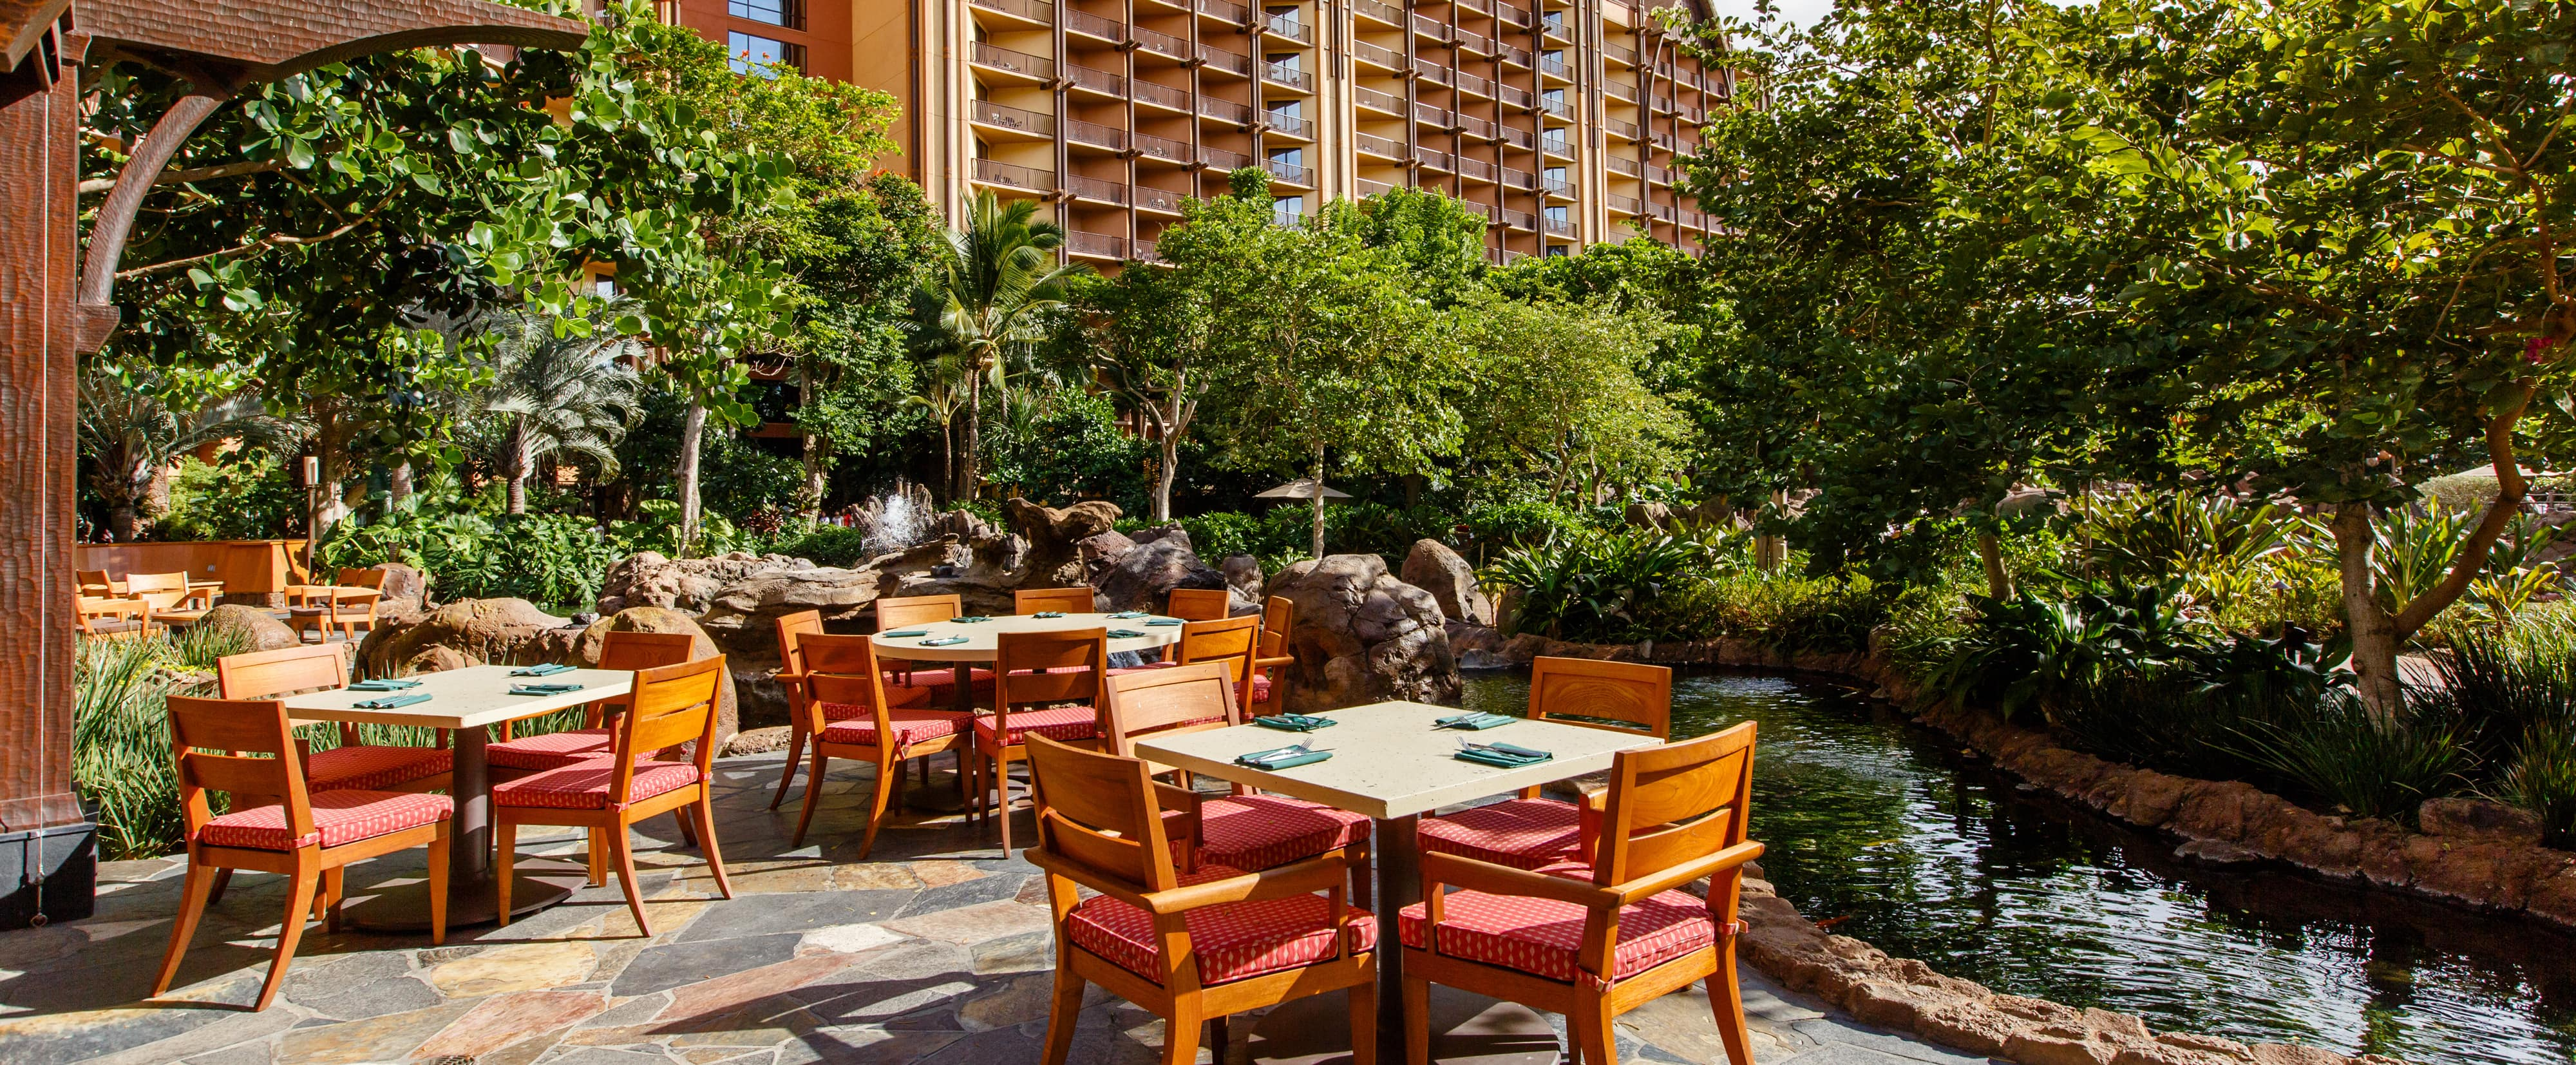 Three outdoor patio tables overlook a lushly landscaped man-made stream with rock features